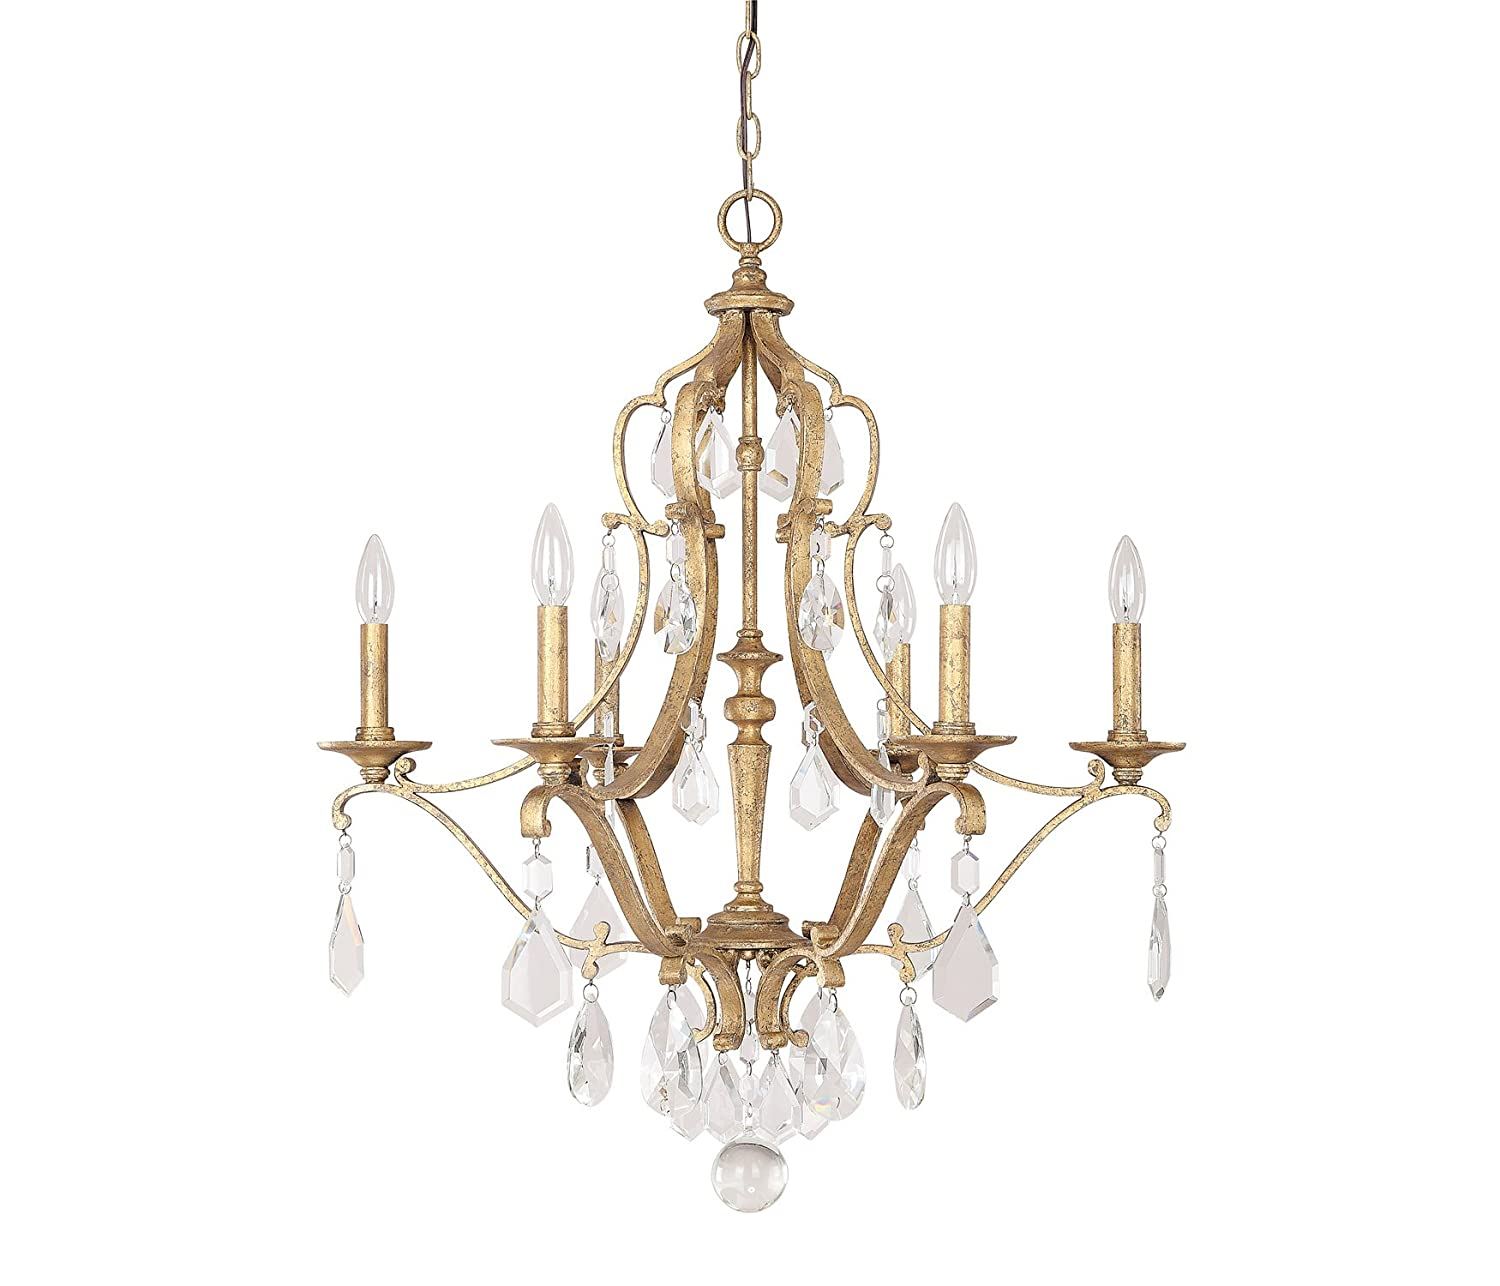 Capital Lighting 4186AG CR Blakely 6 Light Chandelier, Antique Gold Finish  With Clear Crystal Accents     Amazon.com